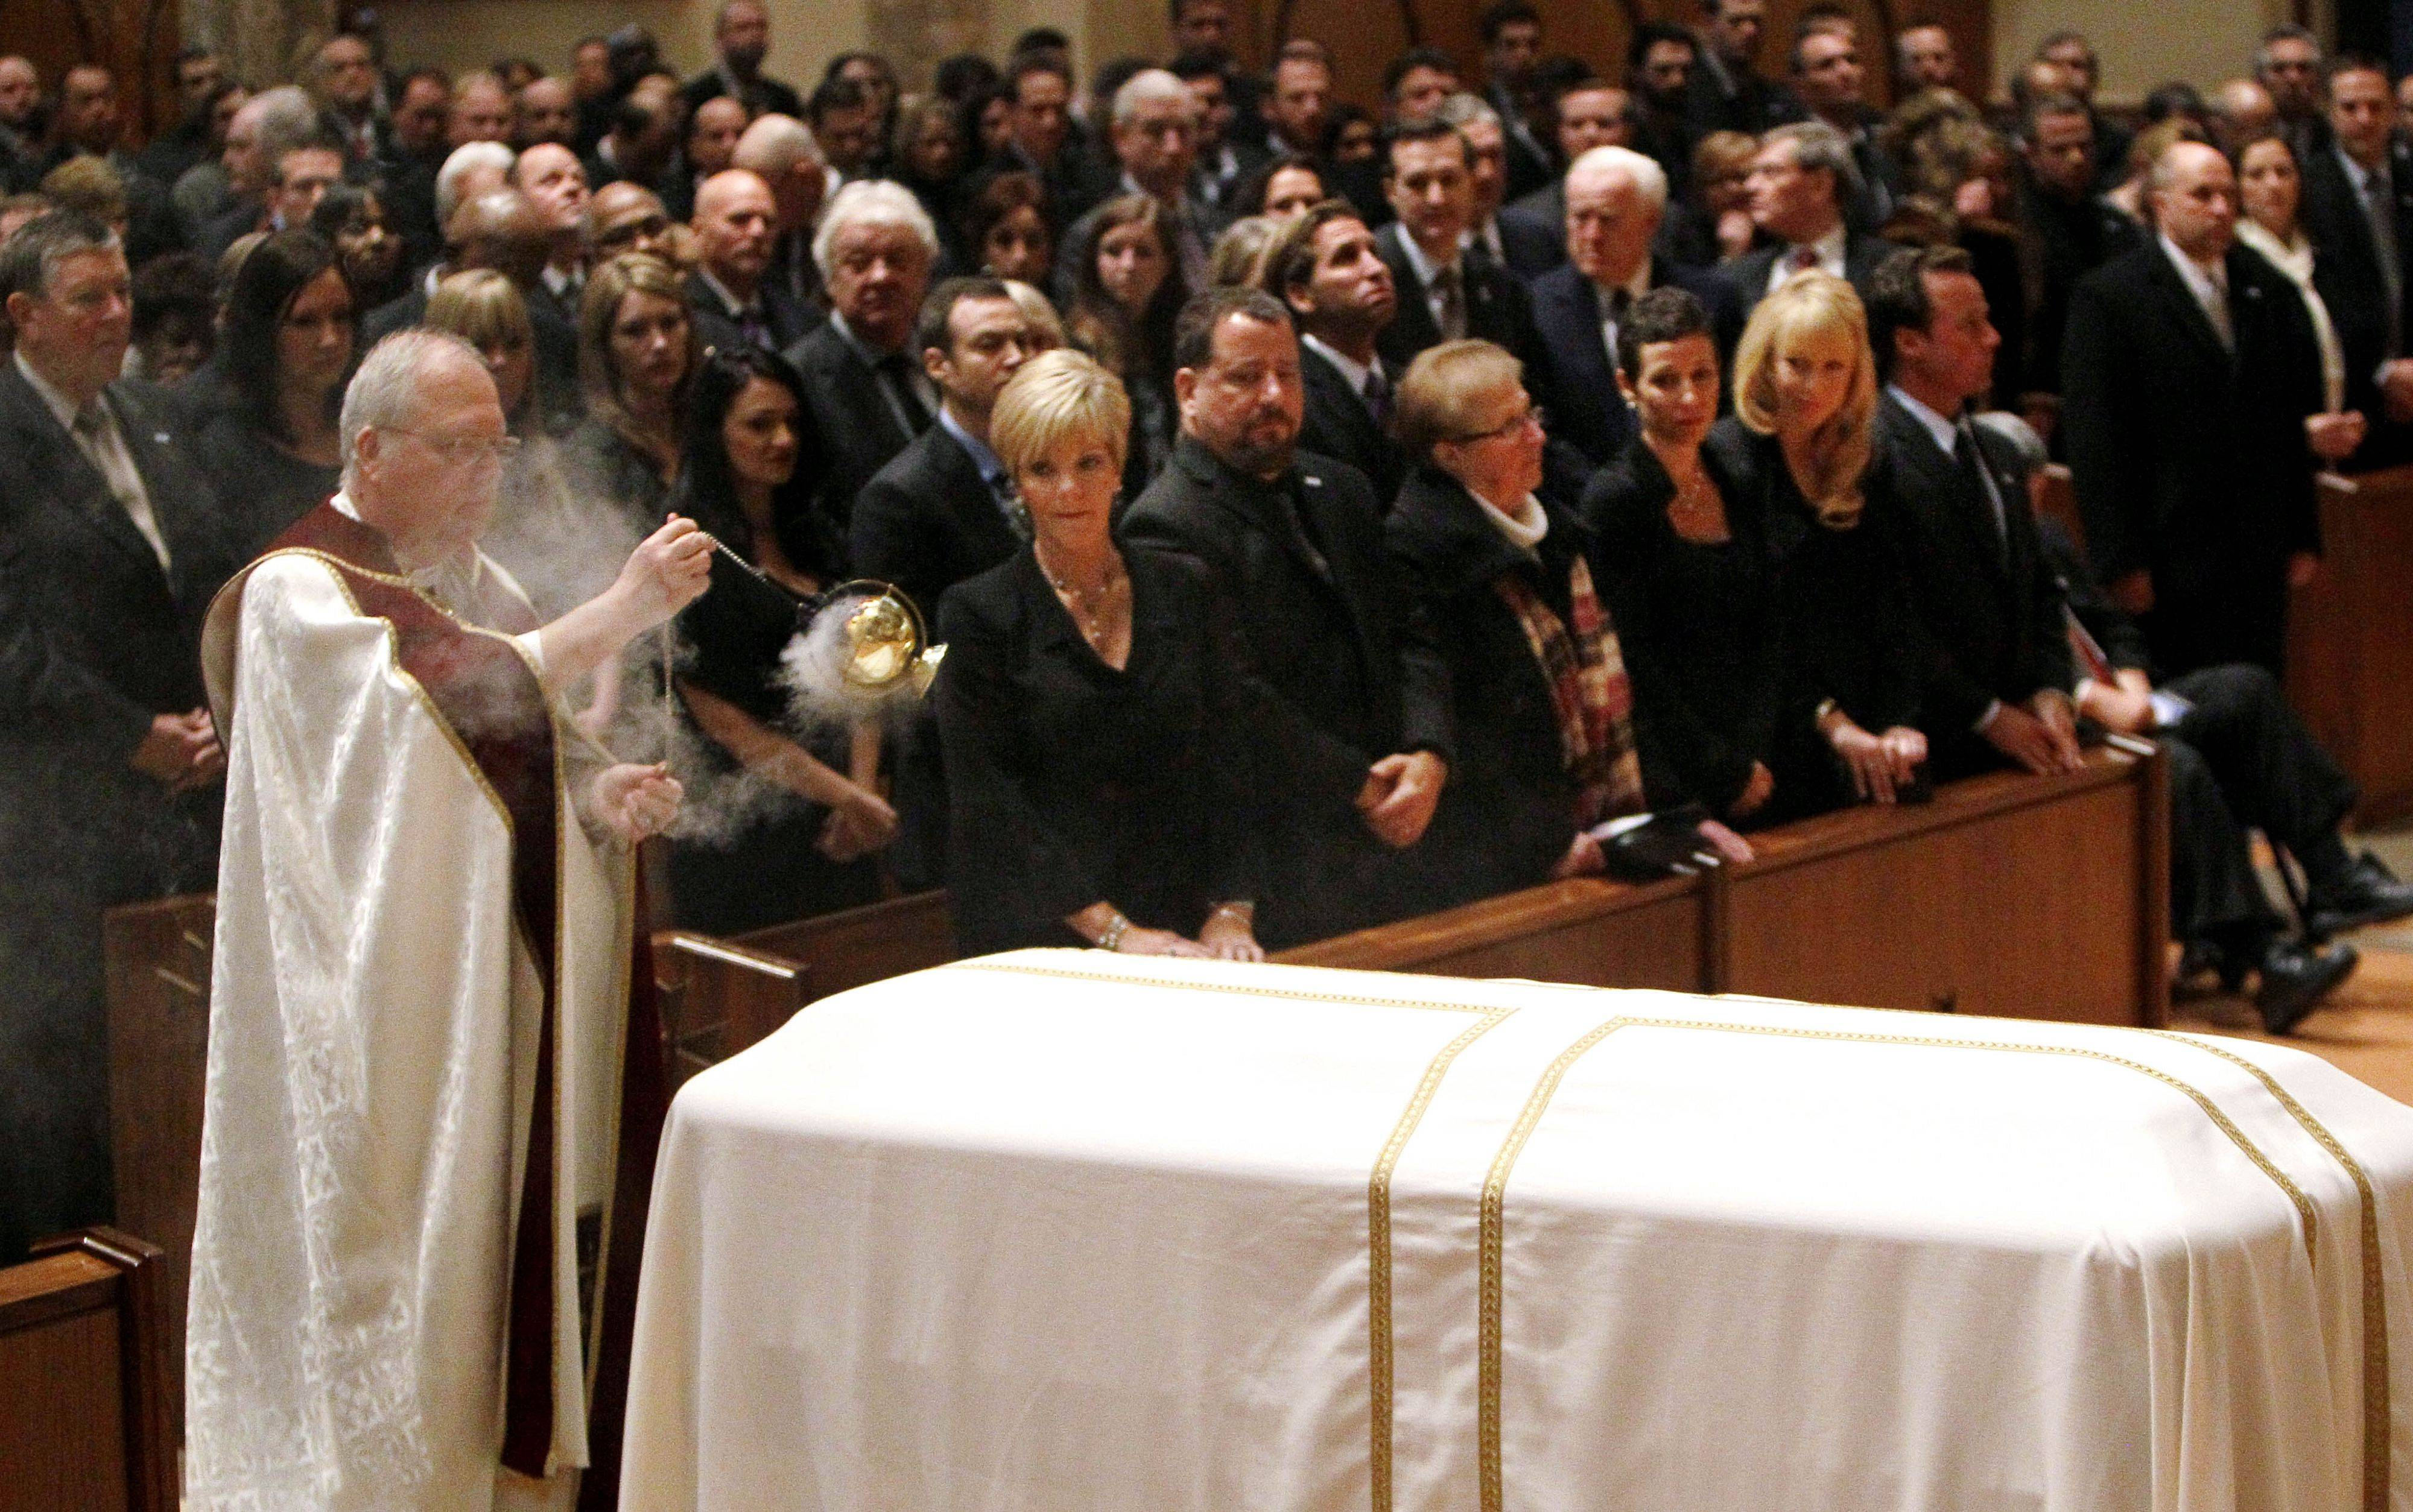 Monsignor Daniel G. Mayall blesses Chicago Cubs' great Ron Santo's casket as Santo's family looks on during the funeral services.